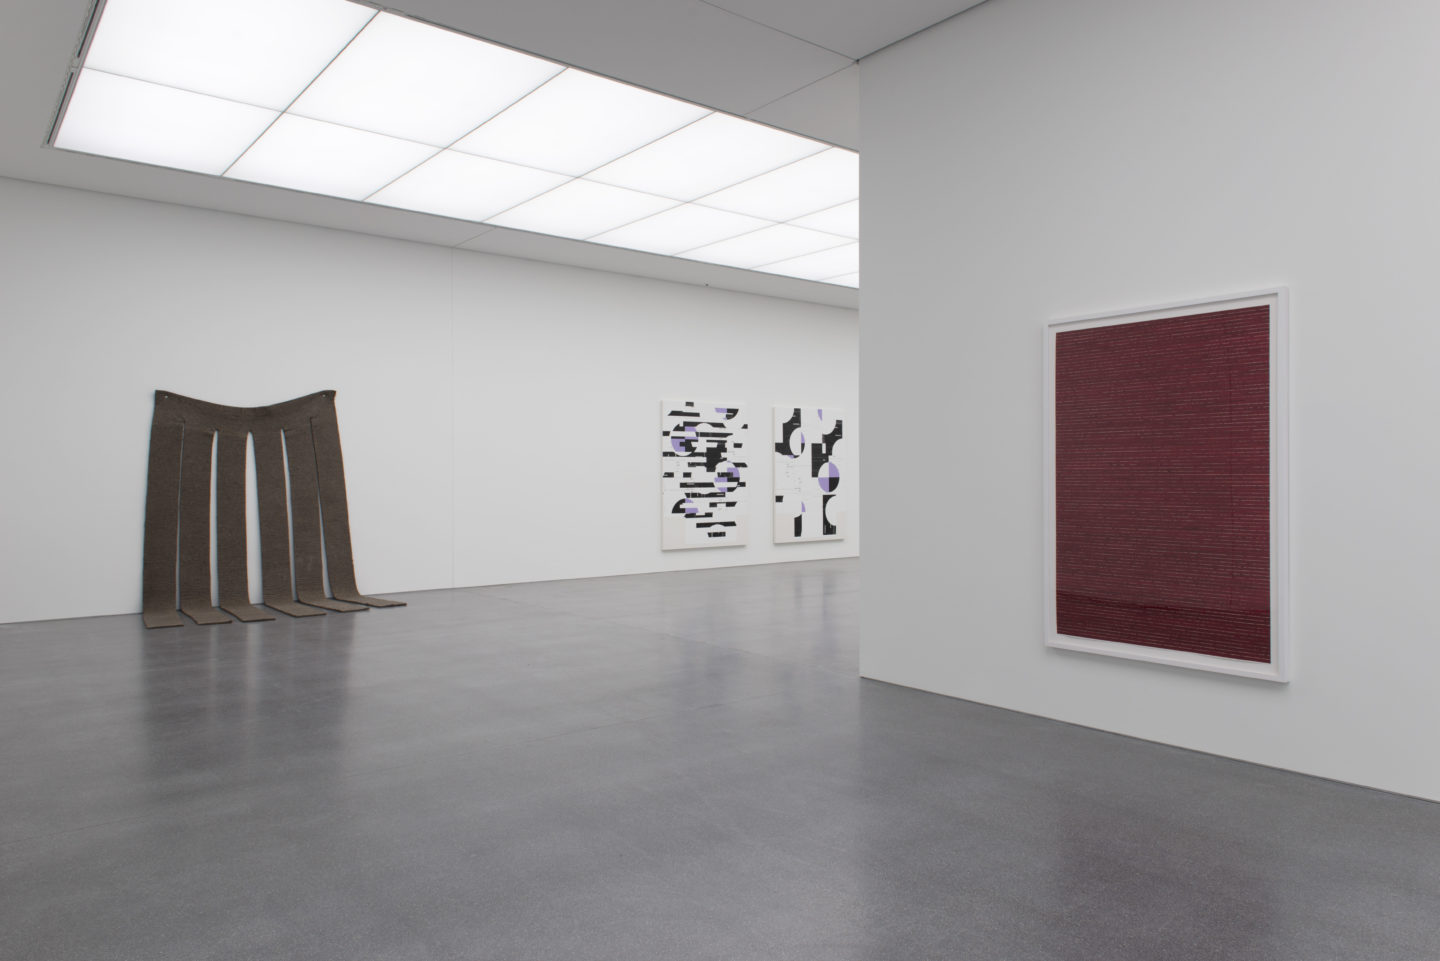 Exhibition View «ALWAYS DIFFERENT, ALWAYS THE SAME» with Morris, Michael Riedel, Corsin Fontana (f.l.t.r.) / Courtesy: the artists and Bündner Kunstmuseum, Chur